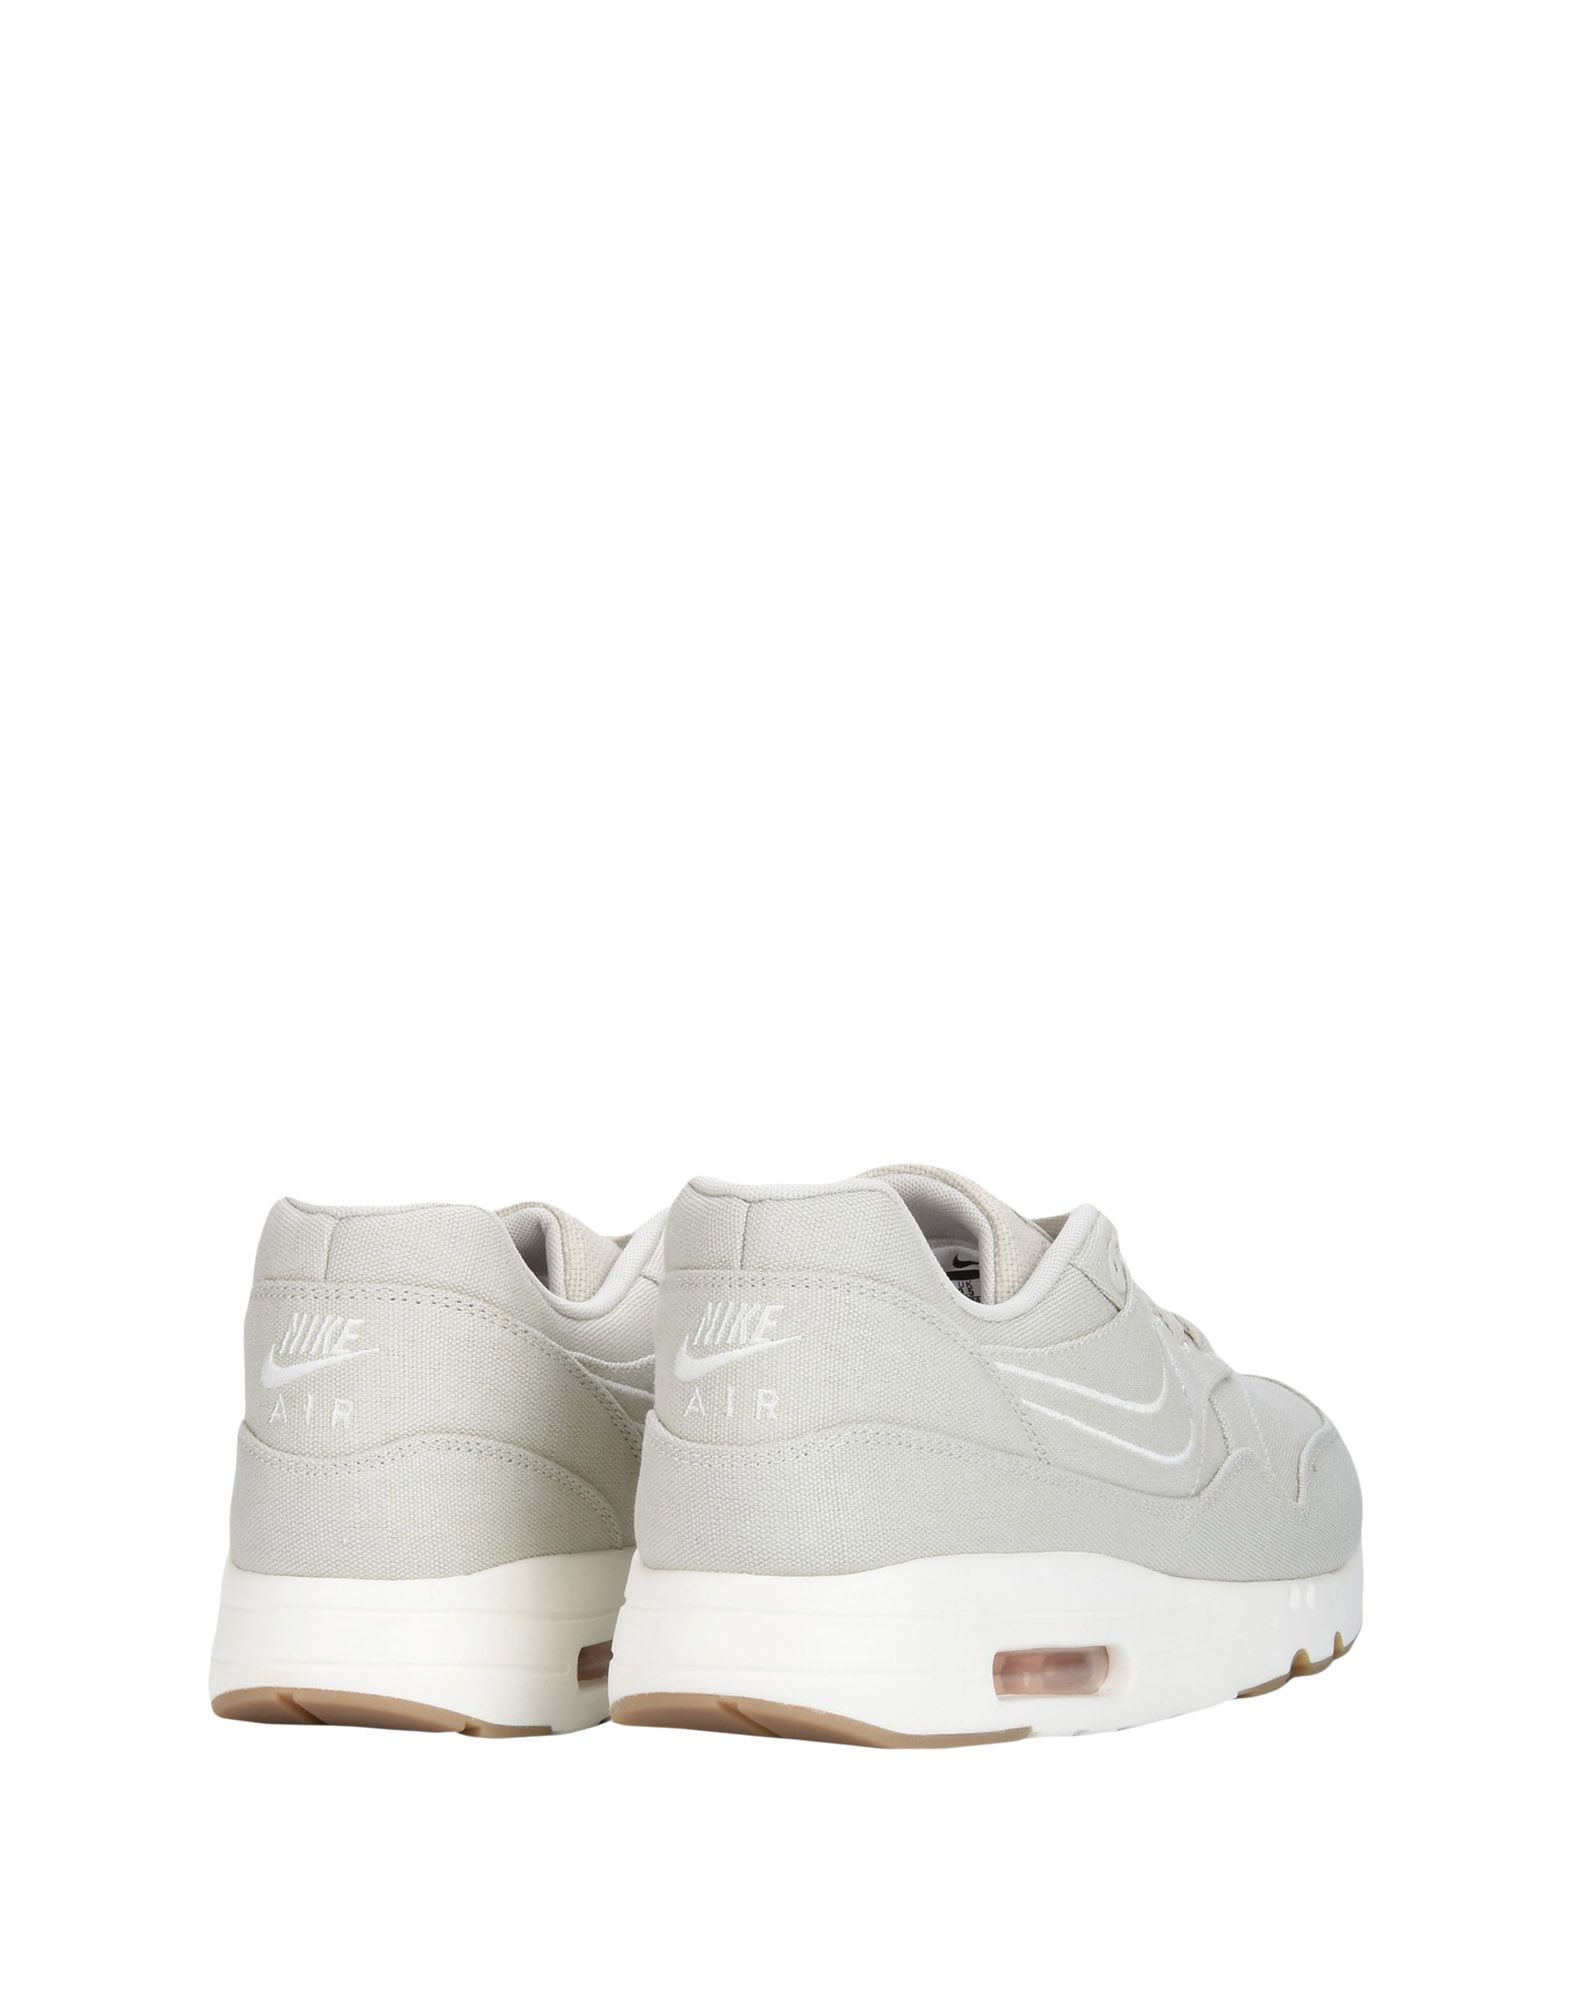 Sneakers Nike  Air Max 1 Ultra 2.0 Textile - Homme - Sneakers Nike sur